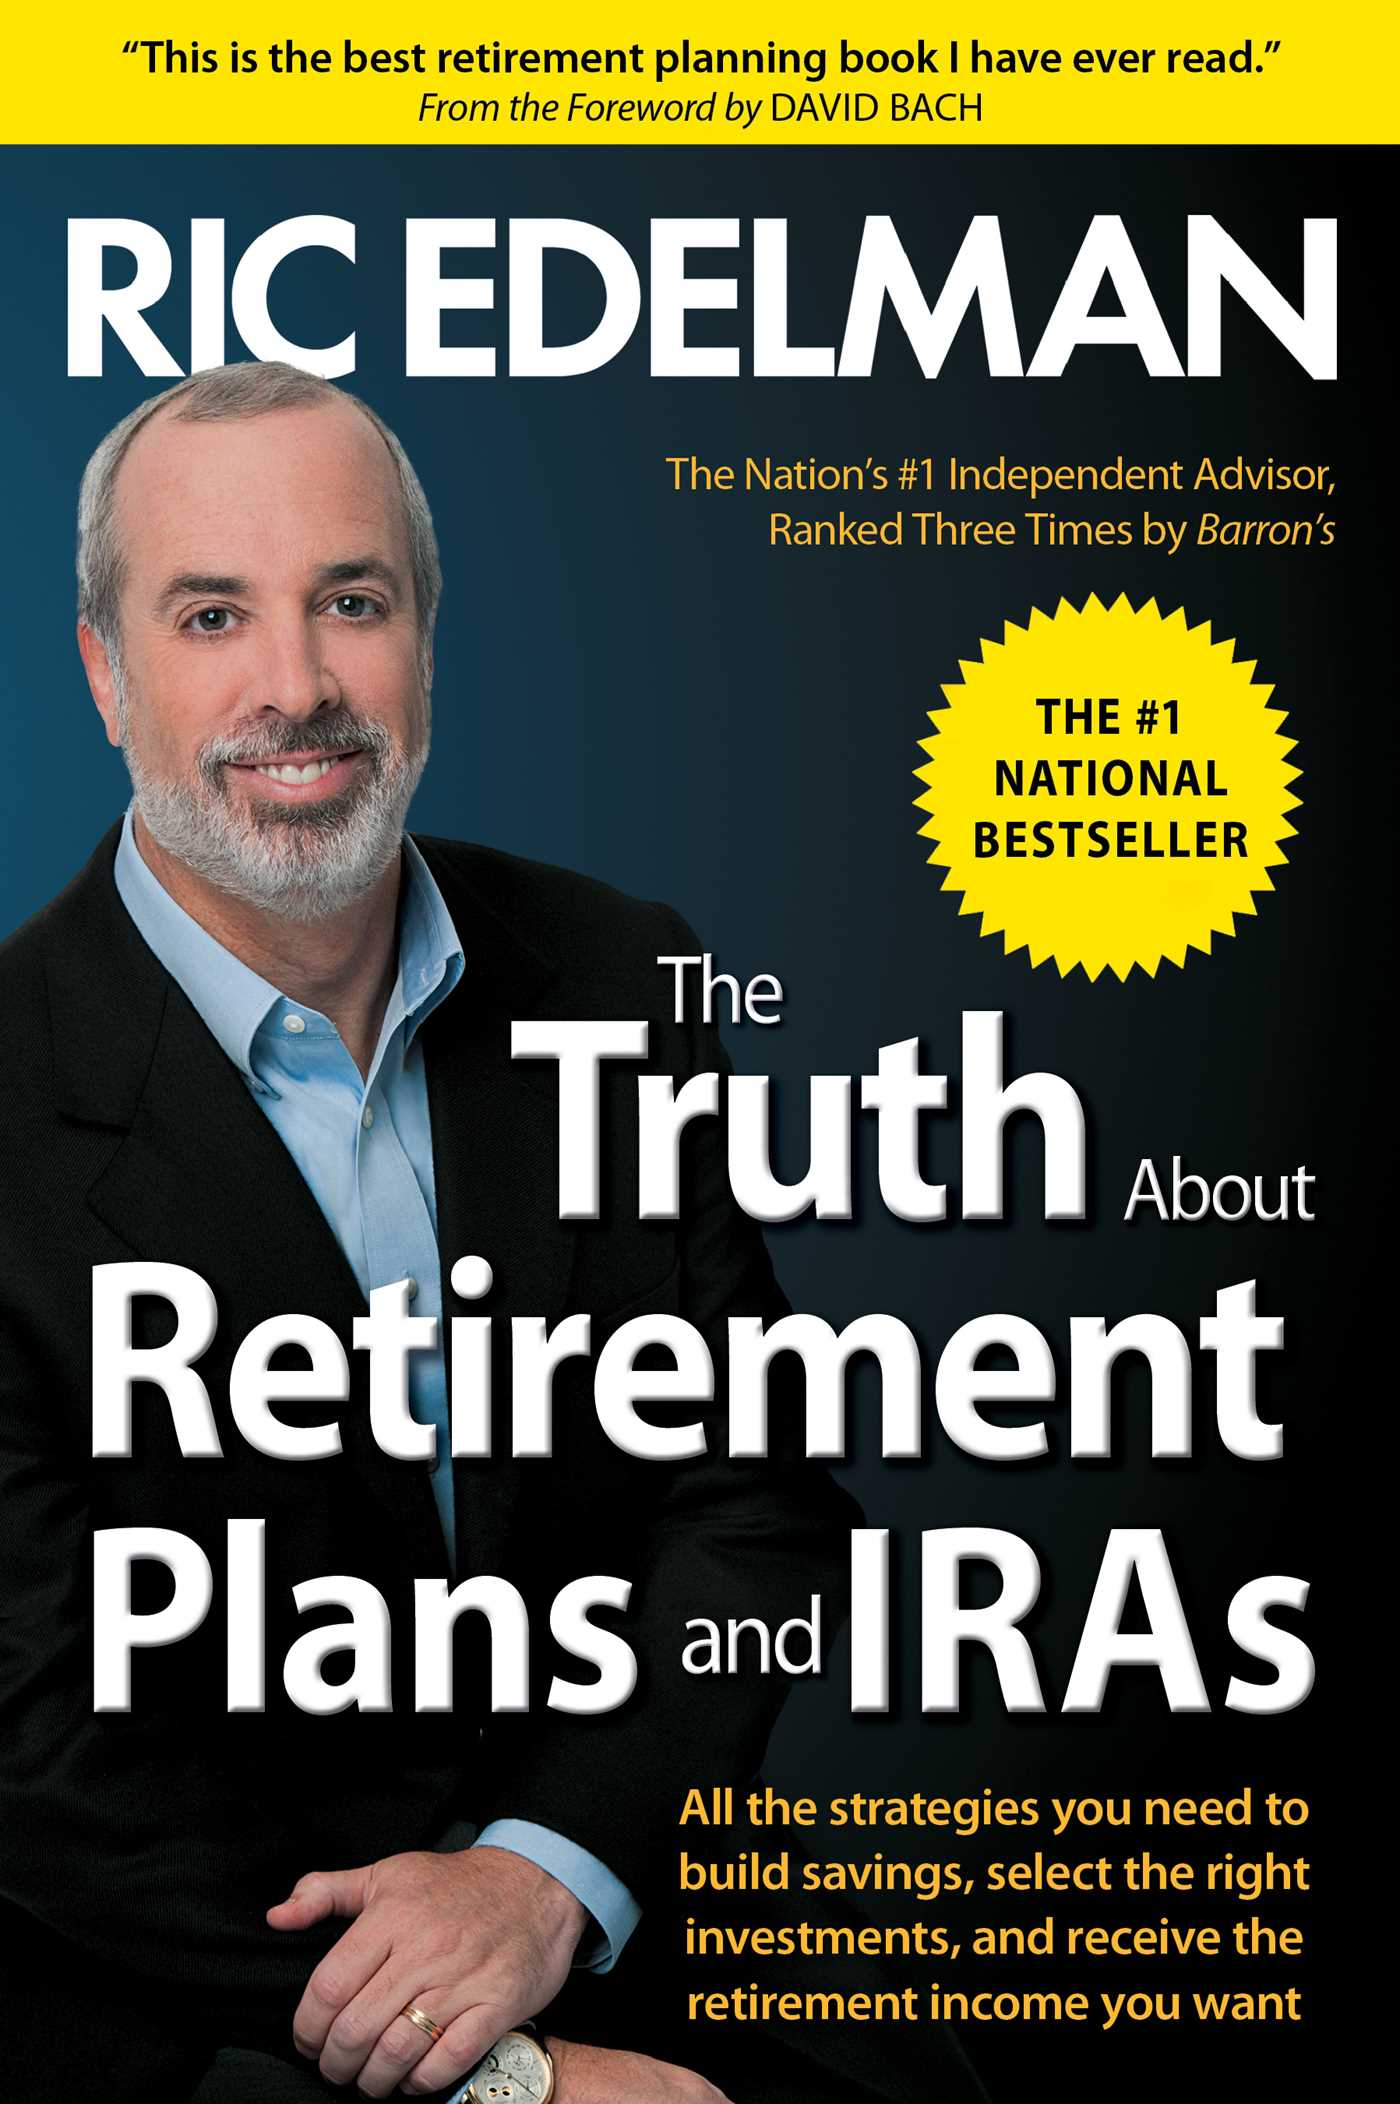 Truth-about-retirement-plans-and-iras-9781476739861_hr